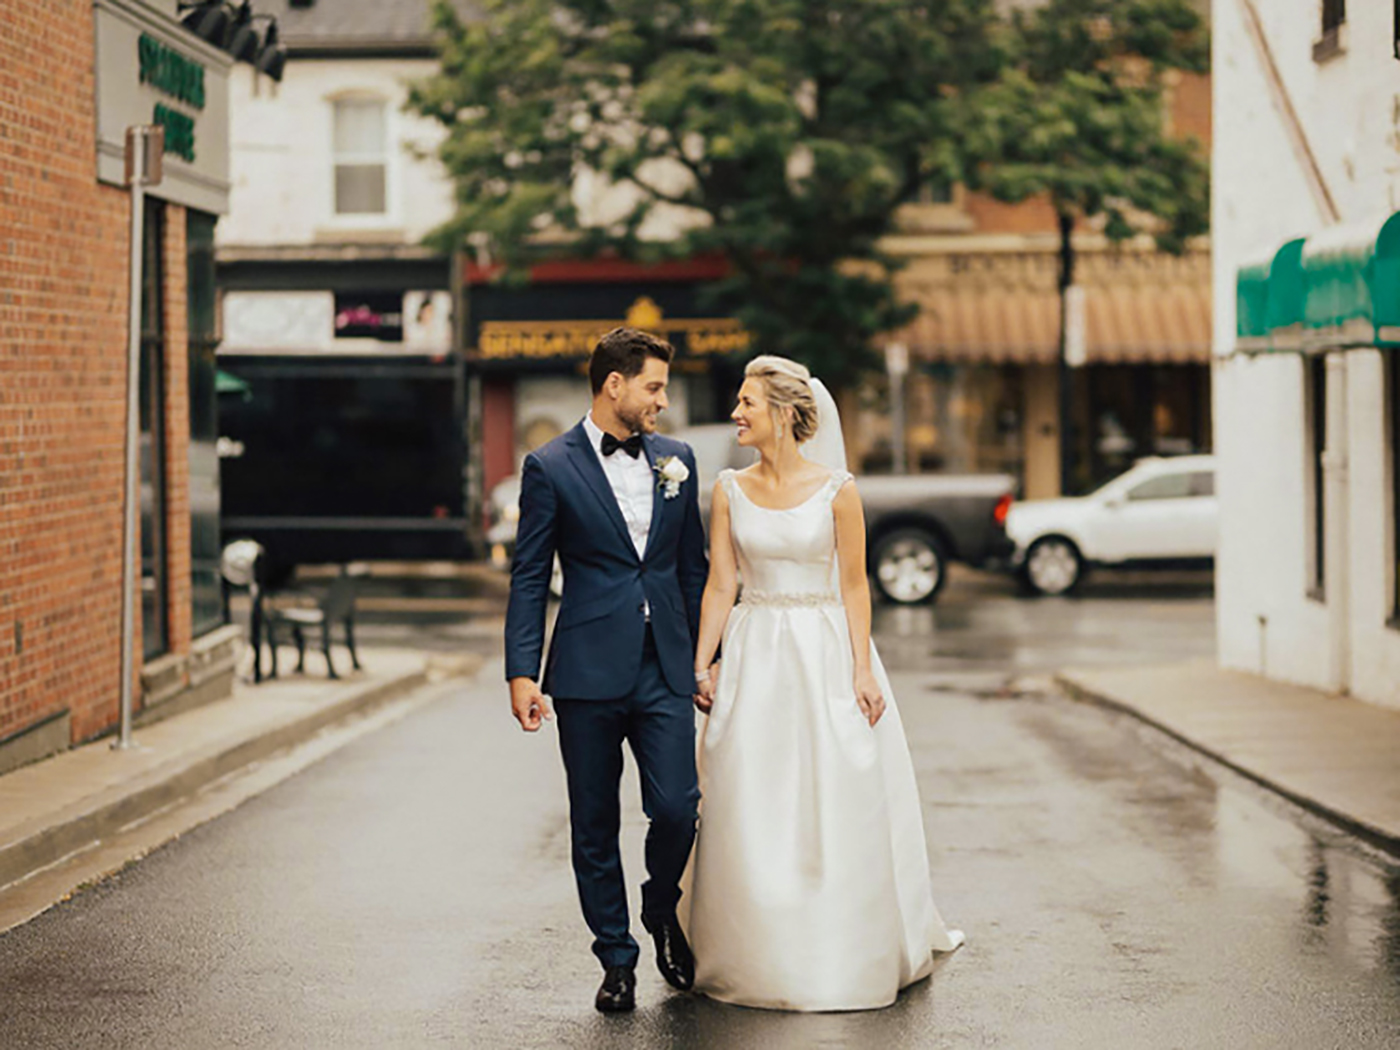 Aaron & Grace's Wedding Dundas Ontario Wedding Videography Ancaster Aidan Hennebry Hush Hush Wedding Films Photography & Film Hamilton Outdoor Elegant Downtown Toronto Niagara Elora Cambridge.jpg